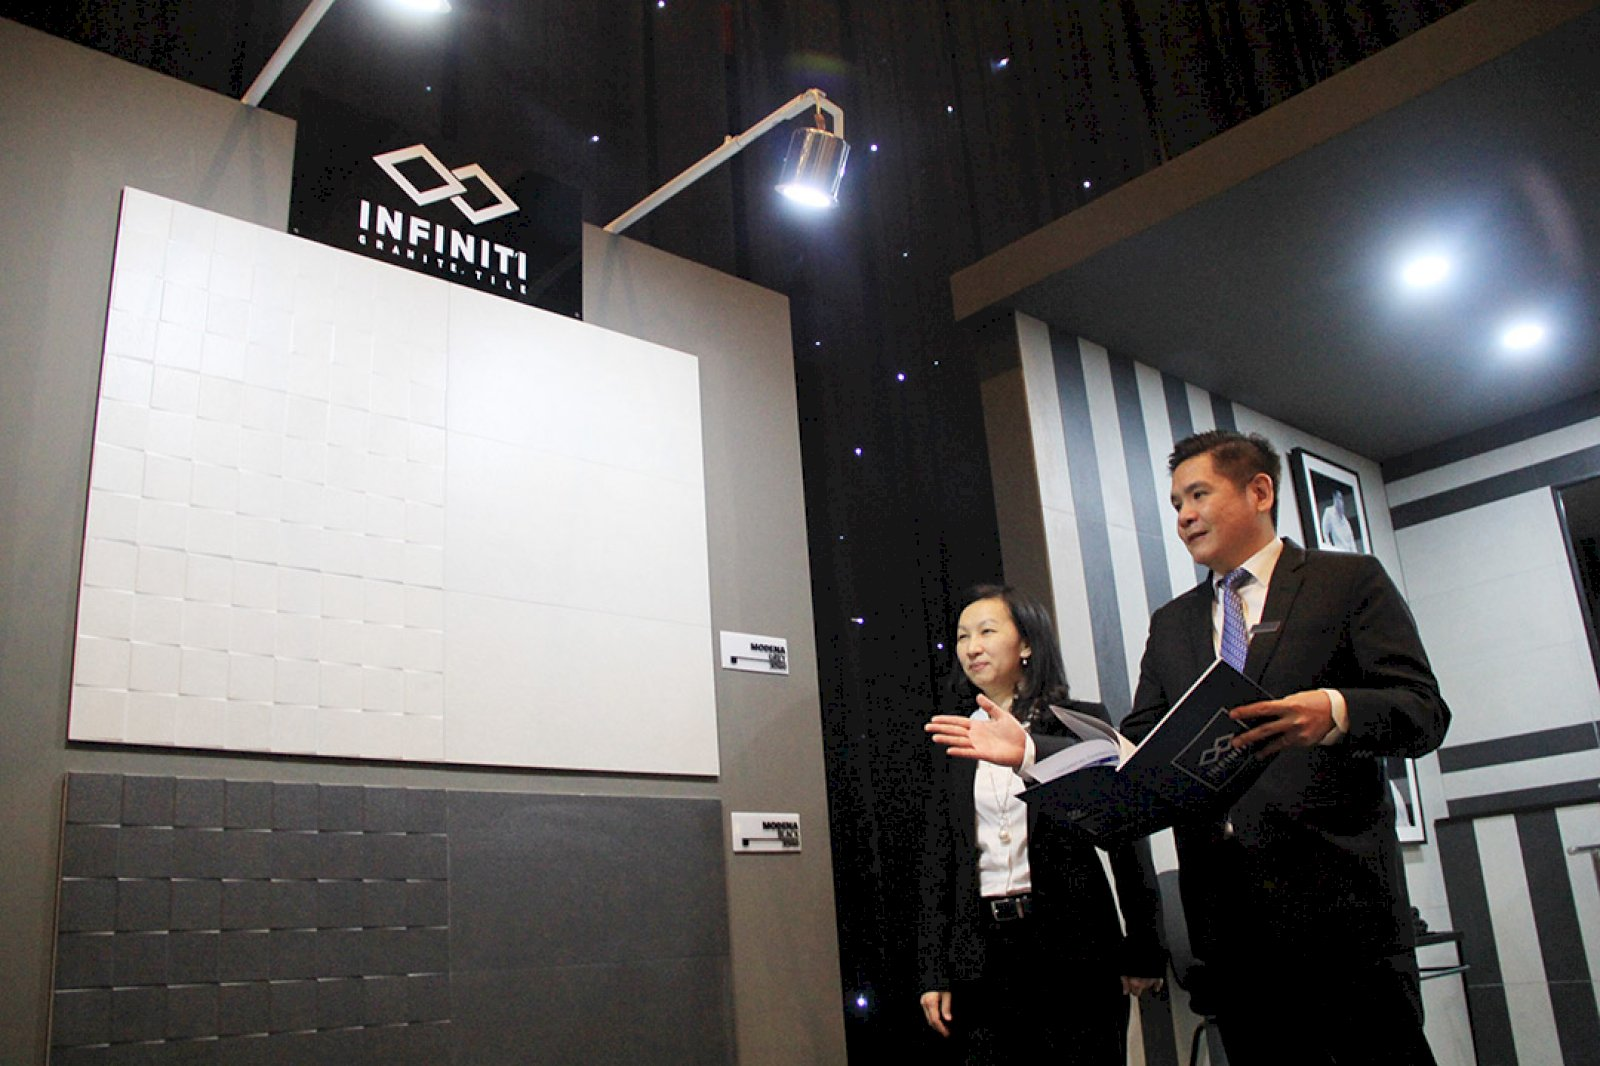 Infiniti Granite Tile is here to answer market demand